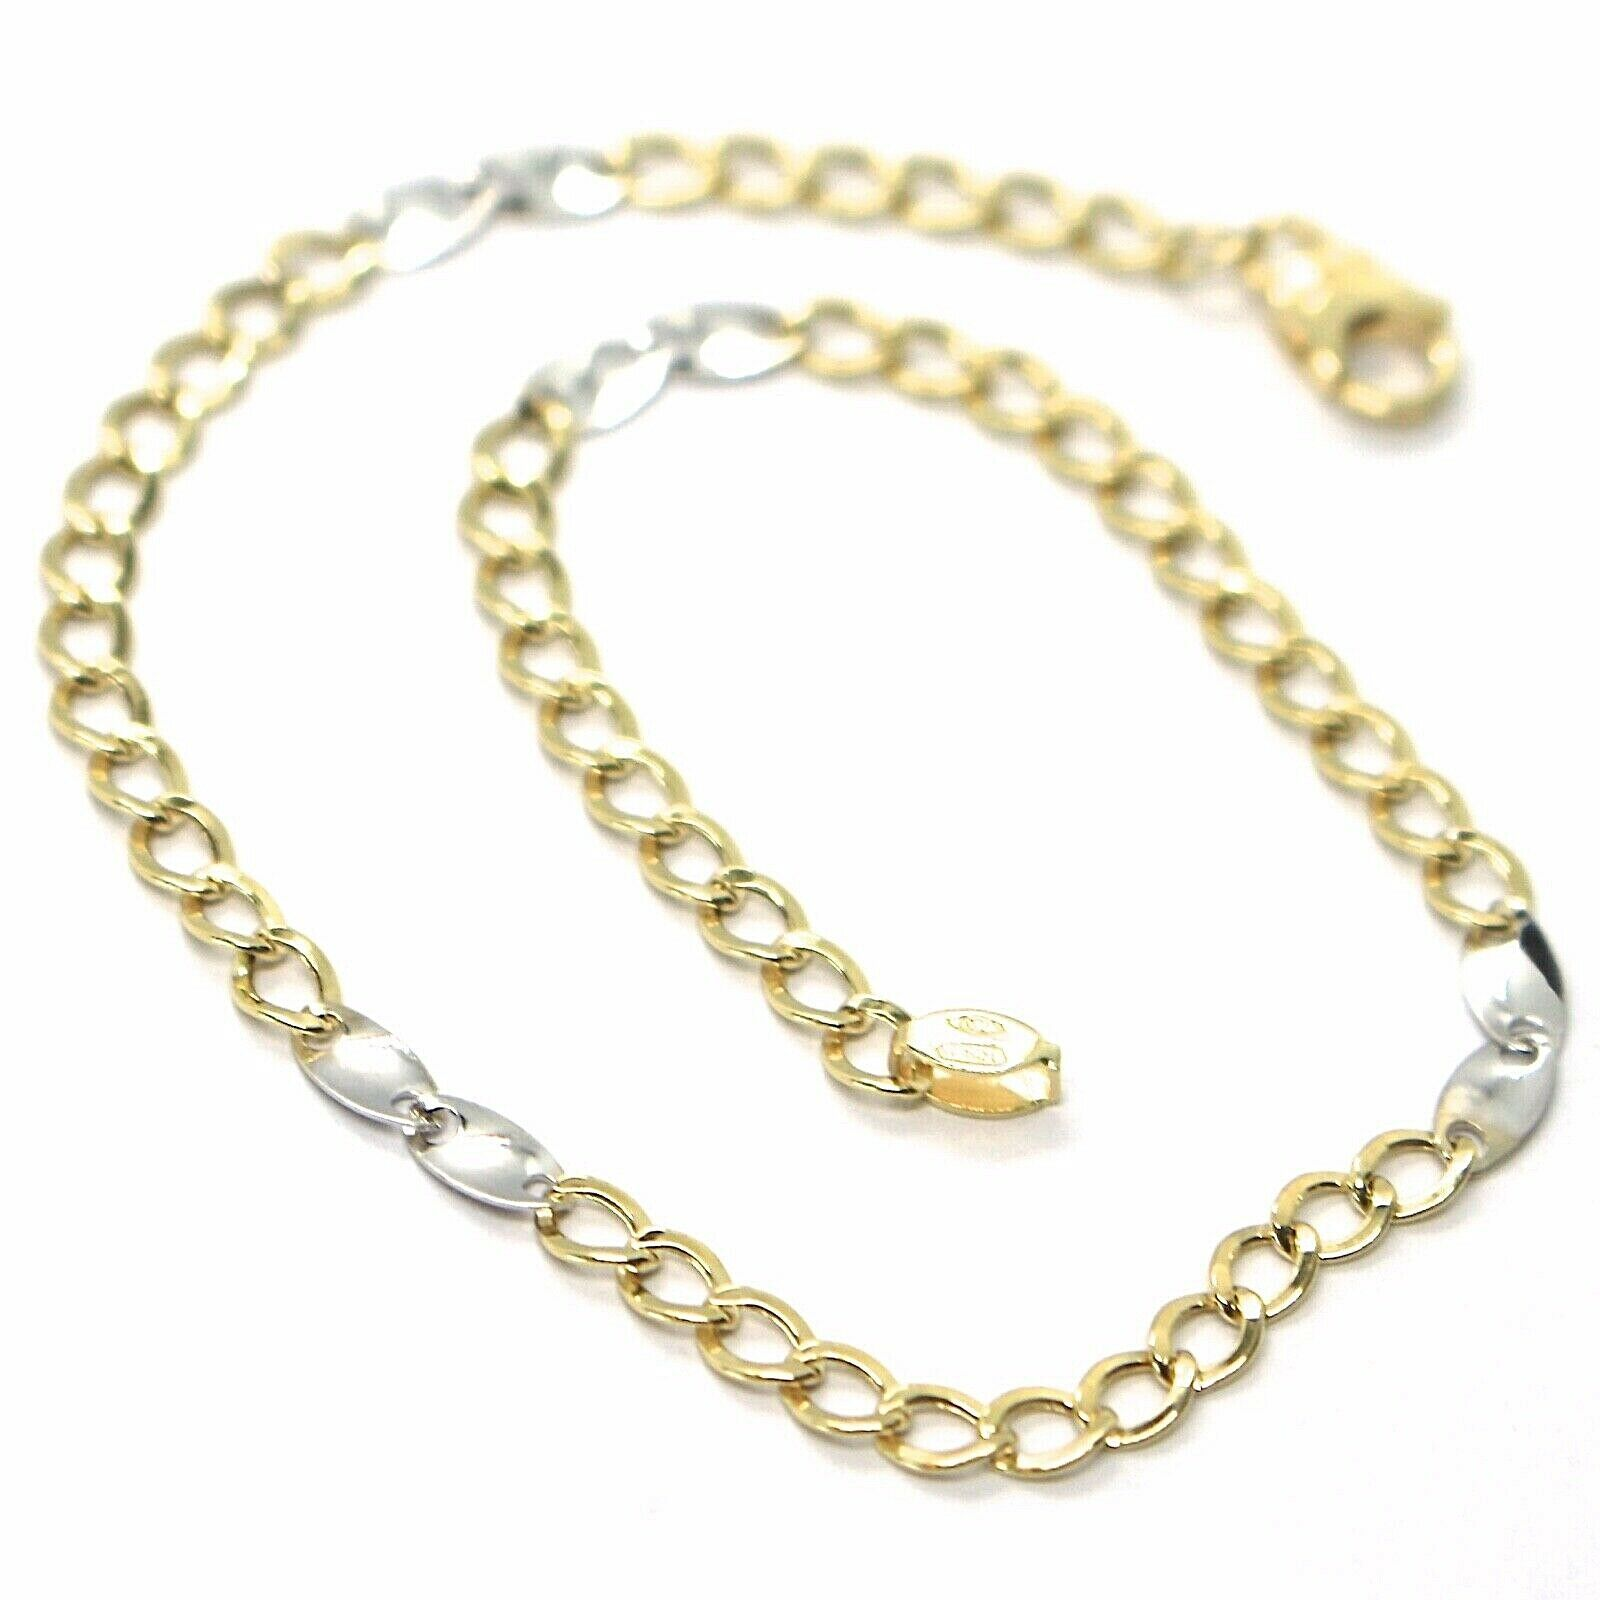 Primary image for Bracelet Yellow and White Gold 18K 750, Curb and Double Ovals Alternating, 3 MM